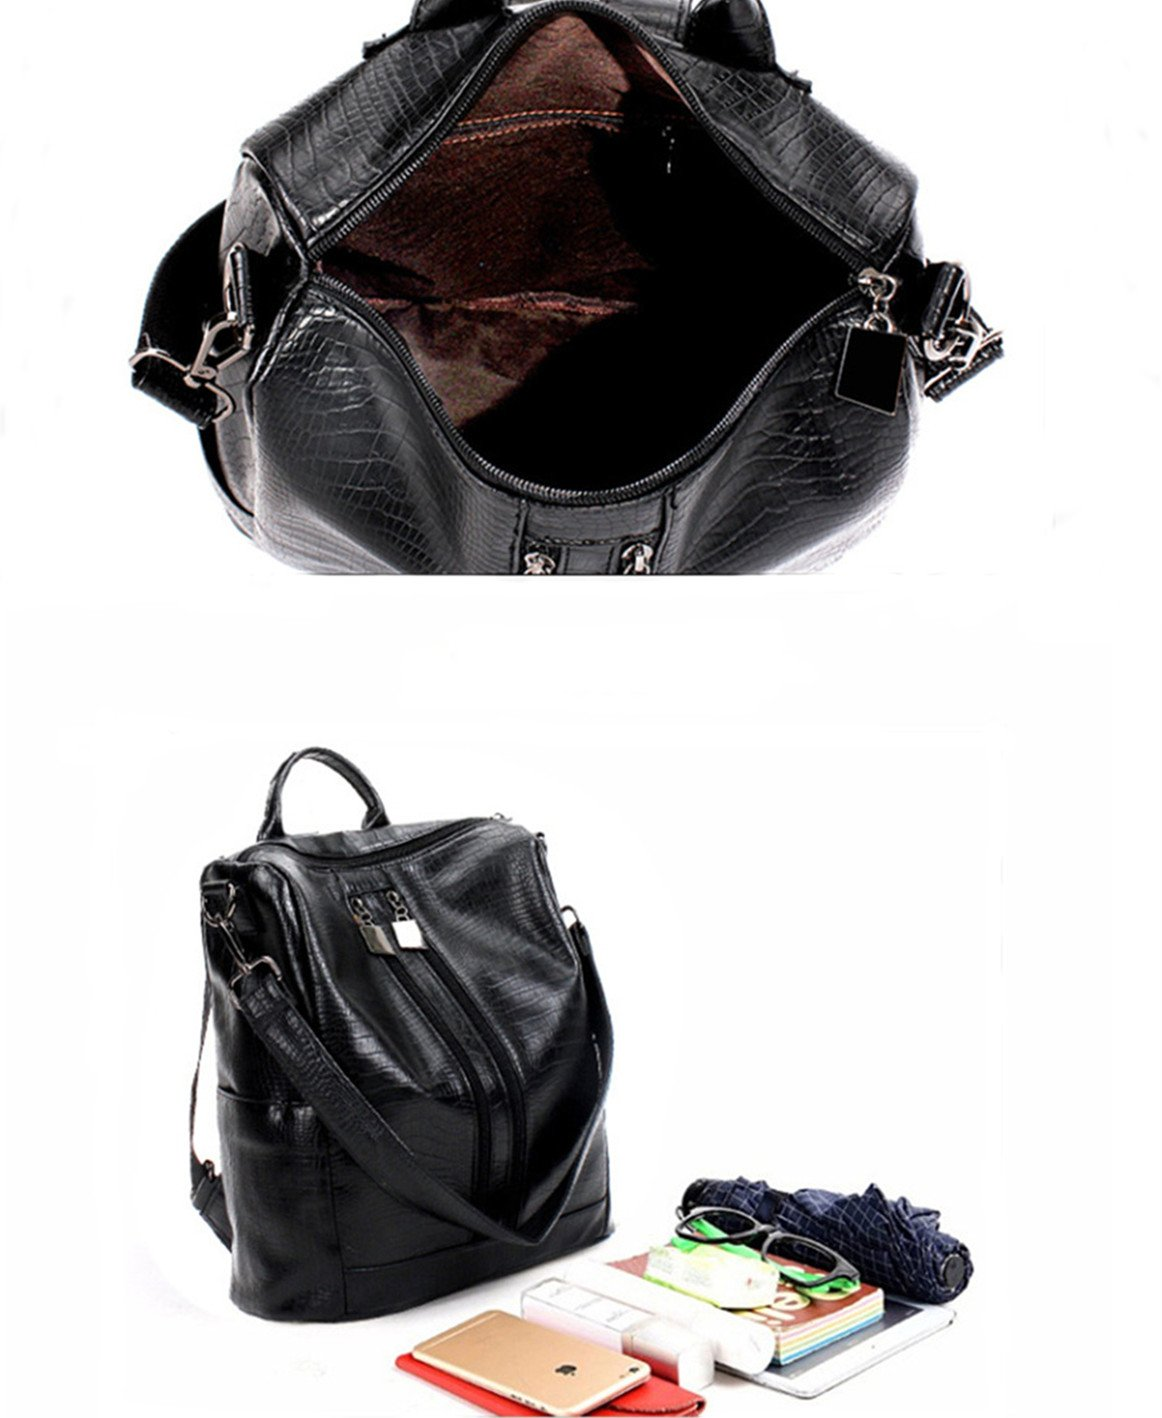 Fashion Backpack for Women Rucksack PU Leather Black Shoulder Bags Purses for Ladies Tote Bags by Goldsuntop (Image #2)